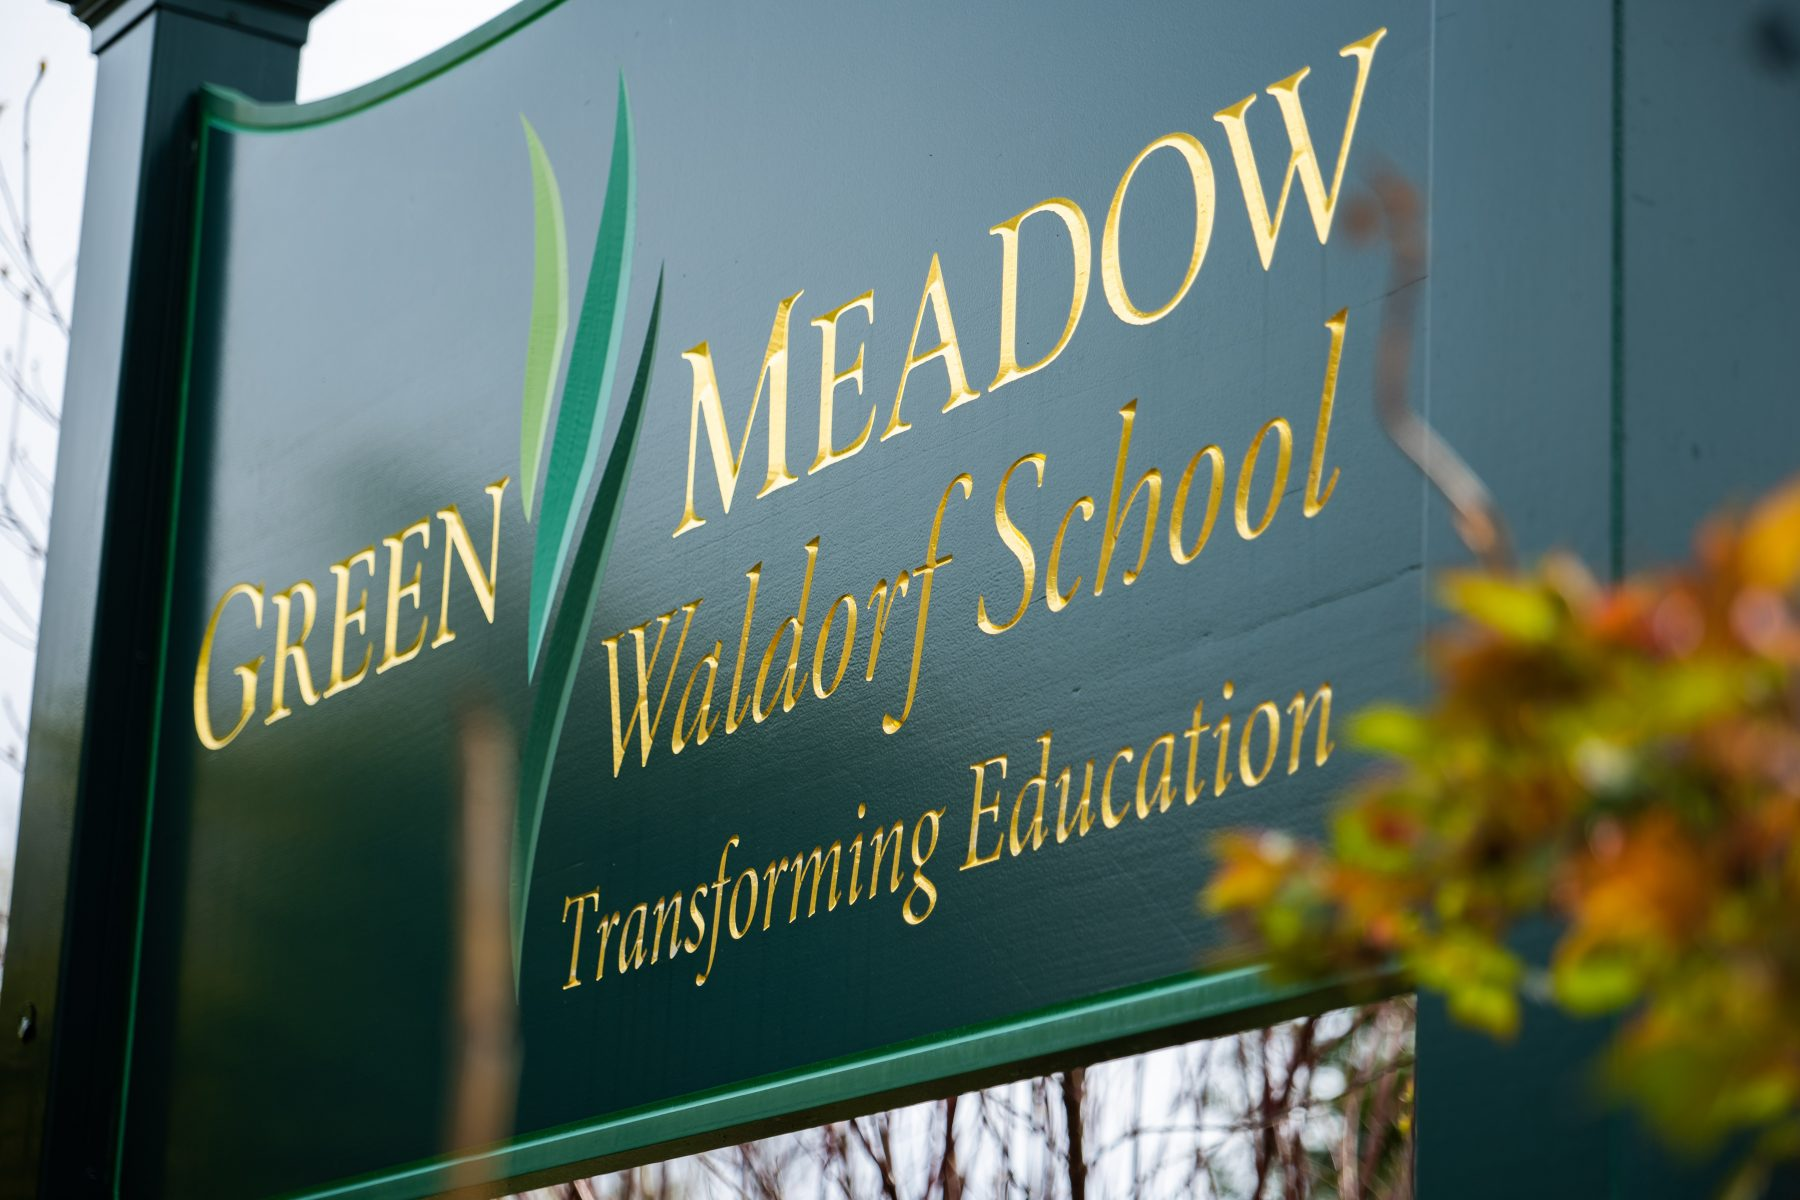 Discover Green Meadow Waldorf School